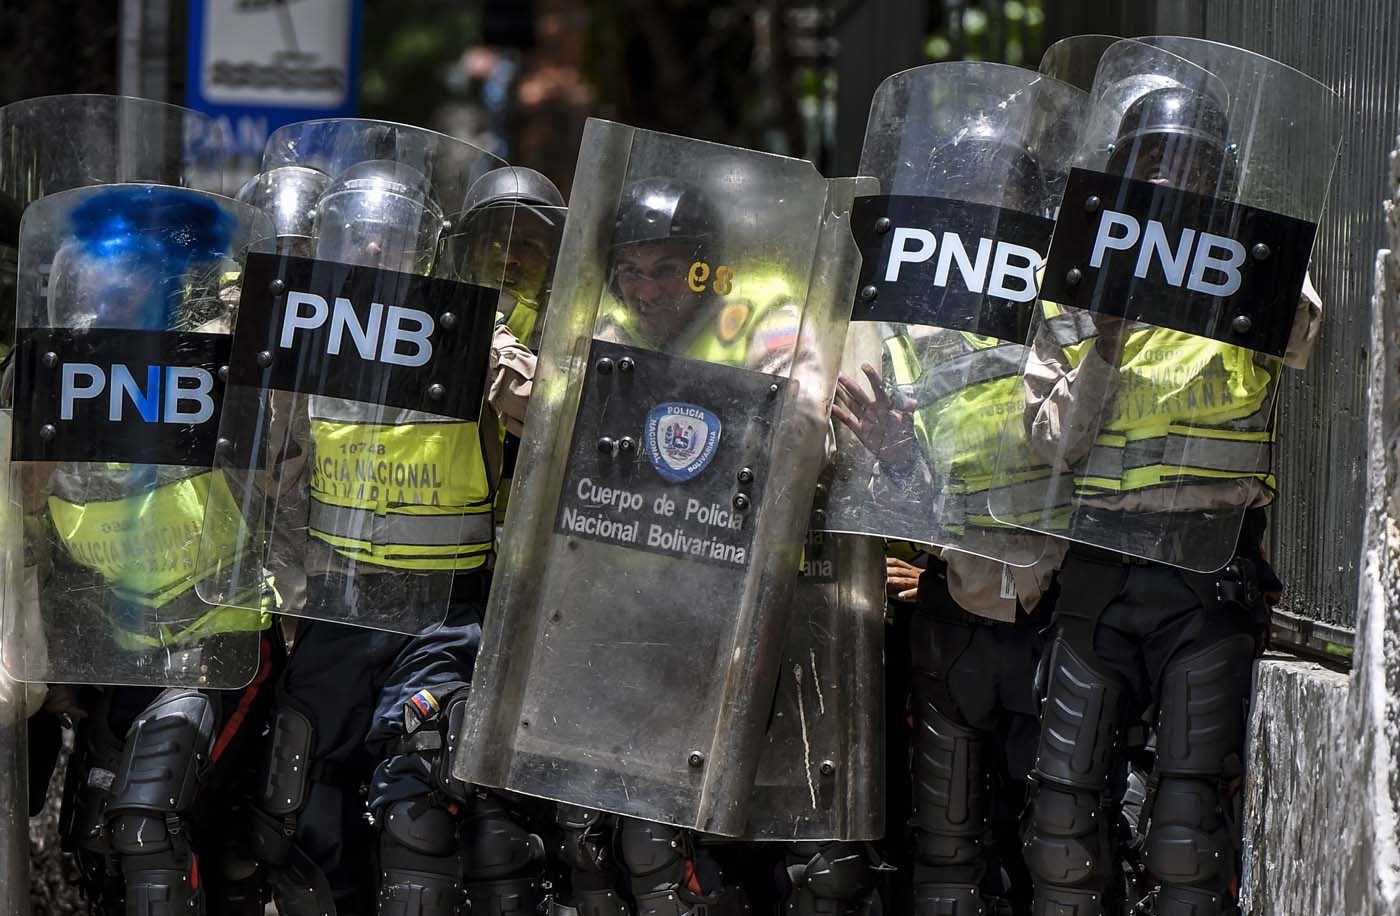 Bolivarian police agents hold their shields and prepare for confrontation during a protest against Nicolas Maduro's government in Caracas on April 4, 2017. Protesters clashed with police in Venezuela Tuesday as the opposition mobilized against moves to tighten President Nicolas Maduro's grip on power. Protesters hurled stones at riot police who fired tear gas as they blocked the demonstrators from advancing through central Caracas, where pro-government activists were also planning to march. / AFP PHOTO / JUAN BARRETO